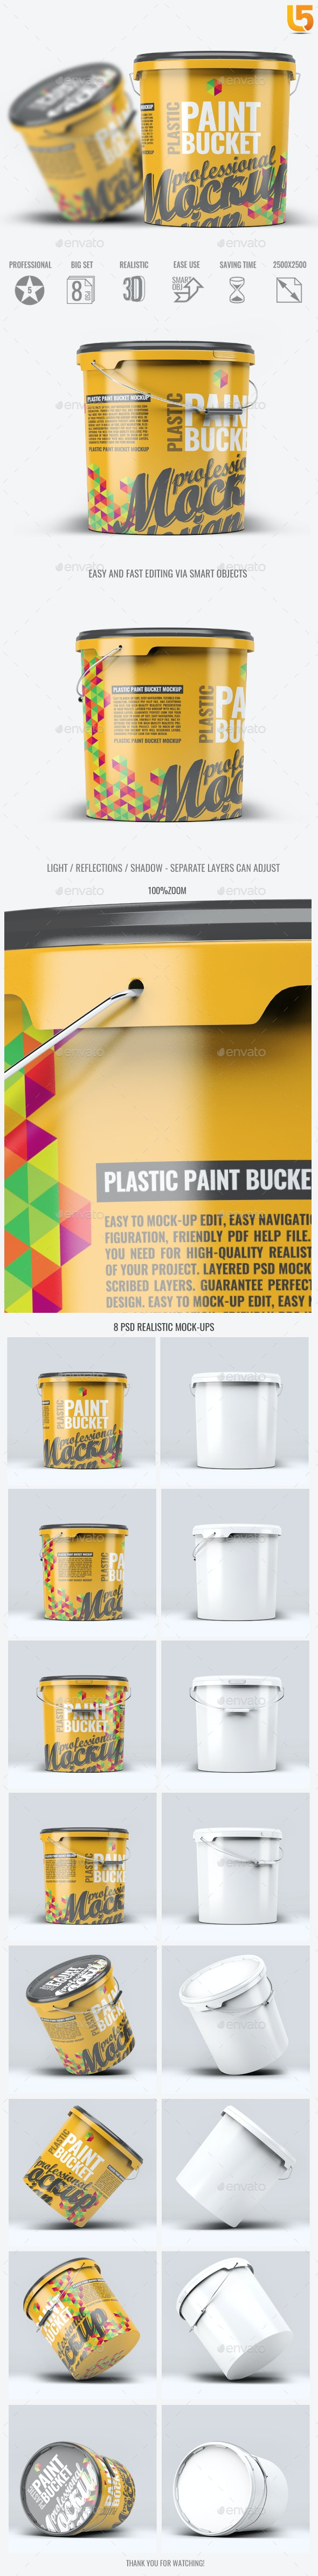 Plastic Paint Bucket Mock-Up - Miscellaneous Packaging